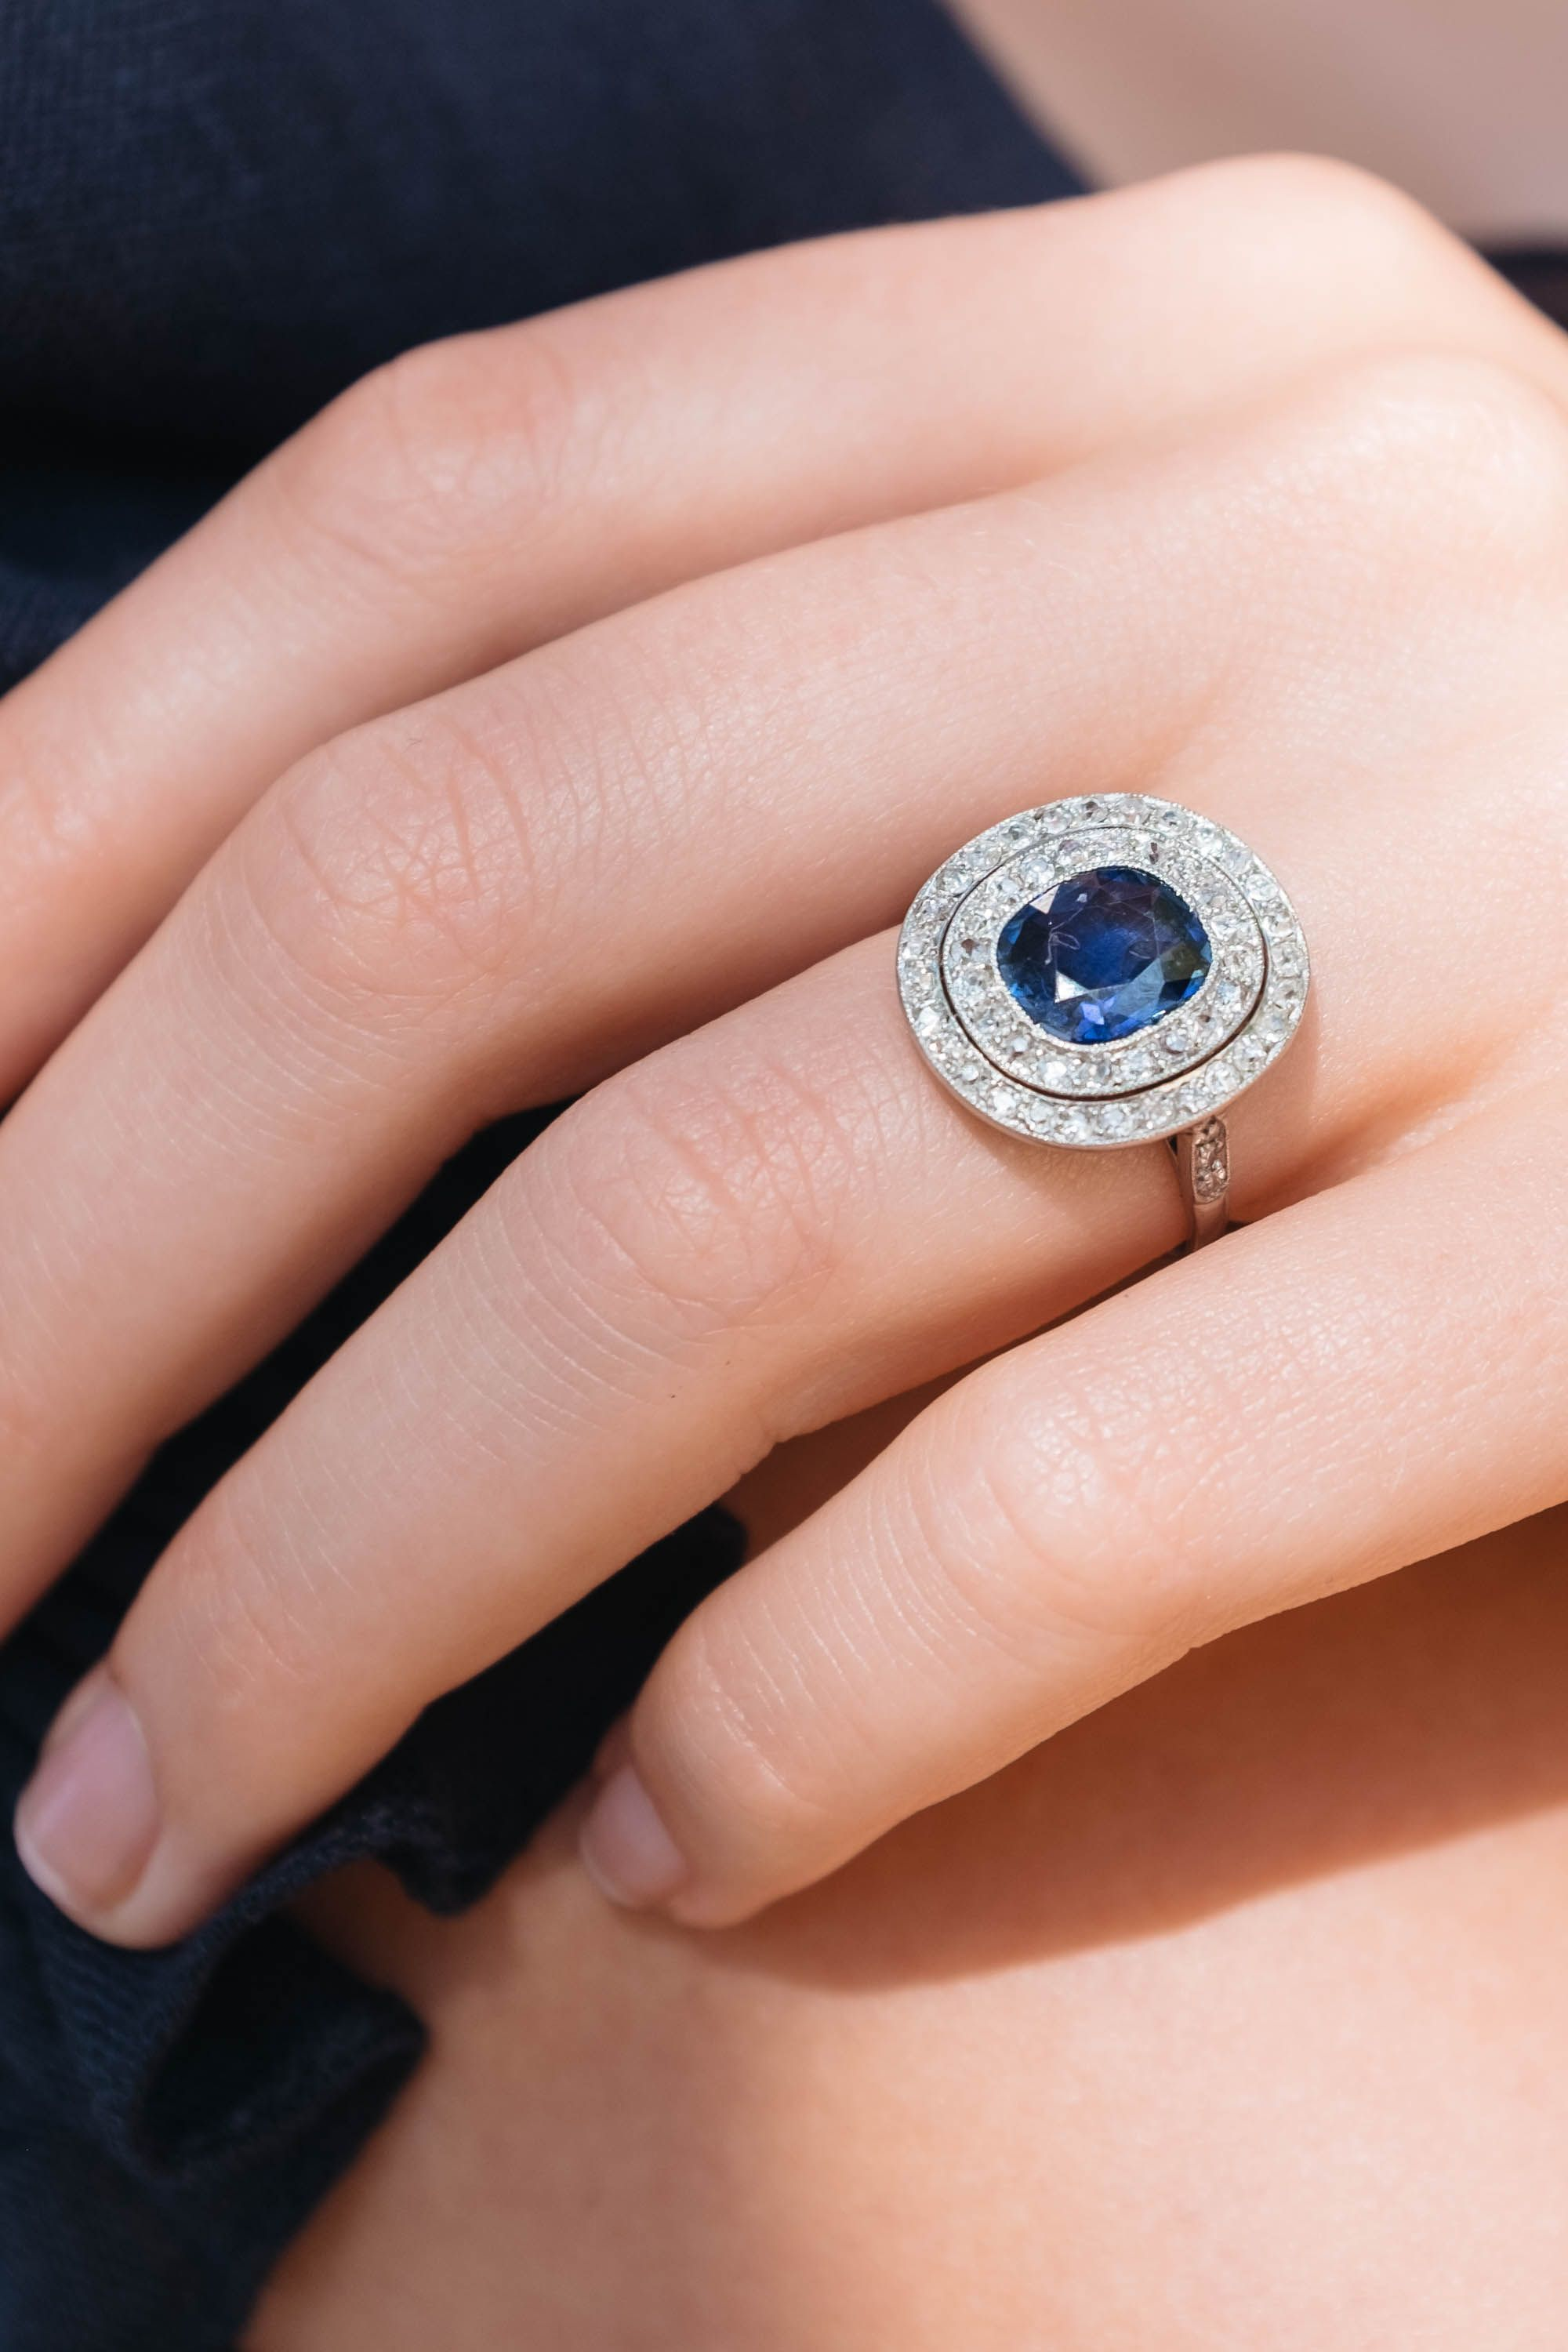 Antique Edwardian Sapphire Engagement Ring | Soldering & Jewelry ...